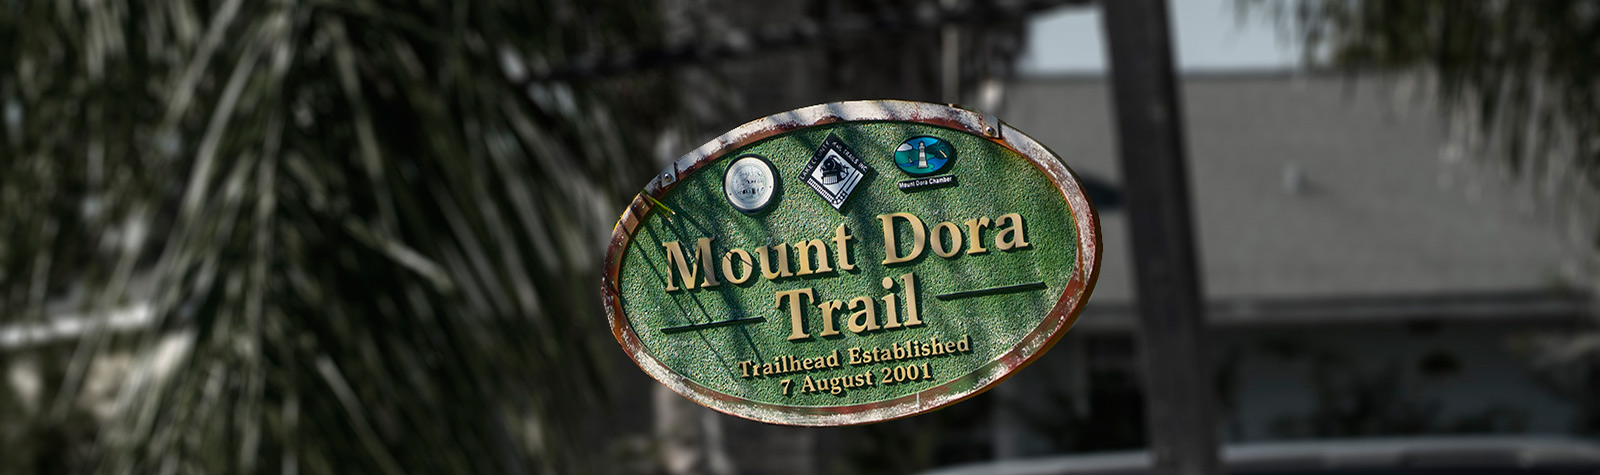 trailhead marker for the Mount Dora trail